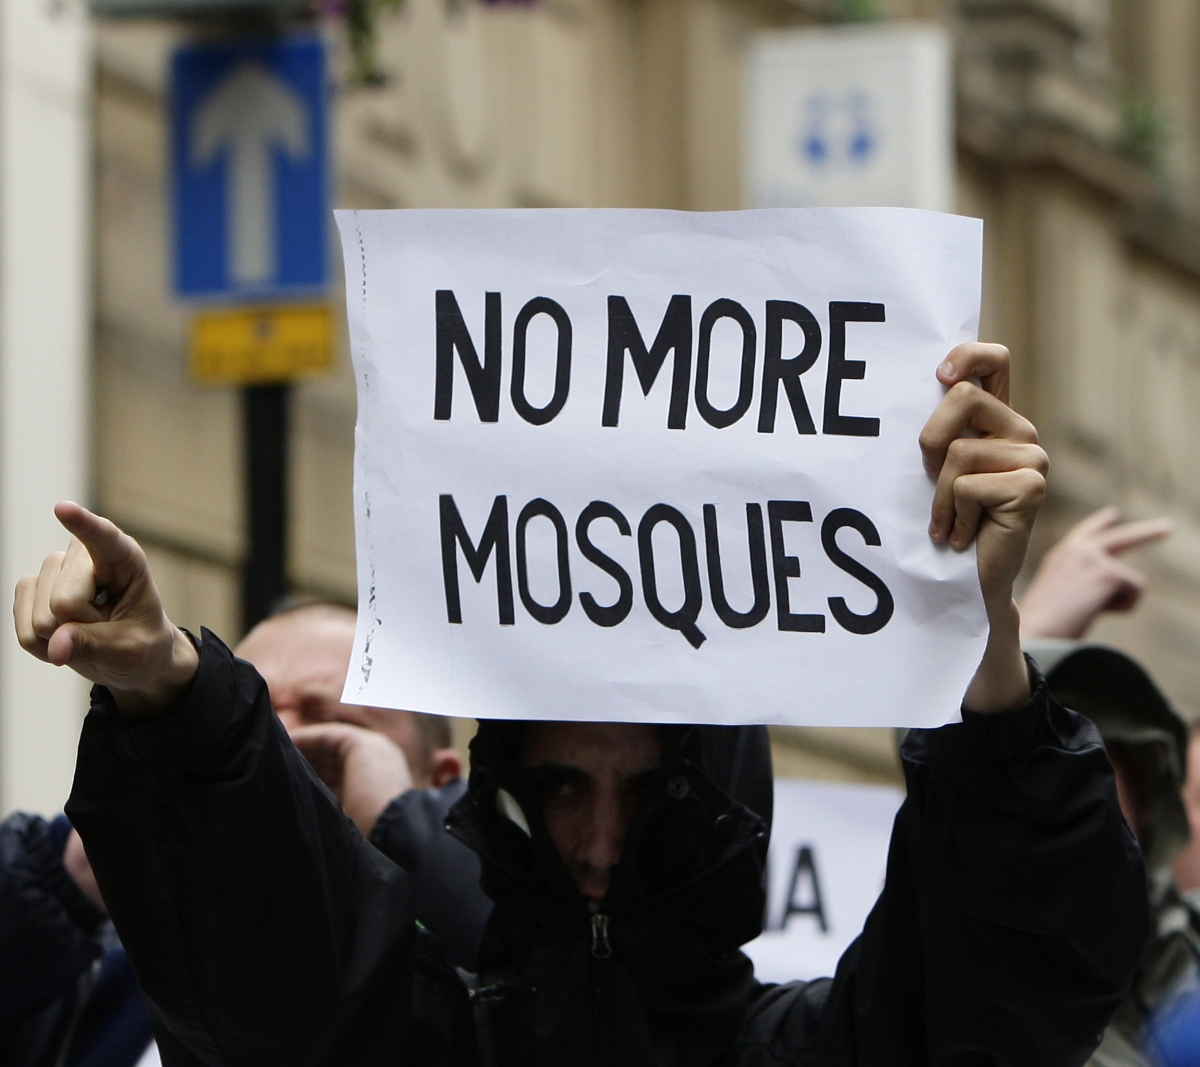 An EDL supporter holds up an anti-Islam message during a rally in Birmingham. (Reuters)